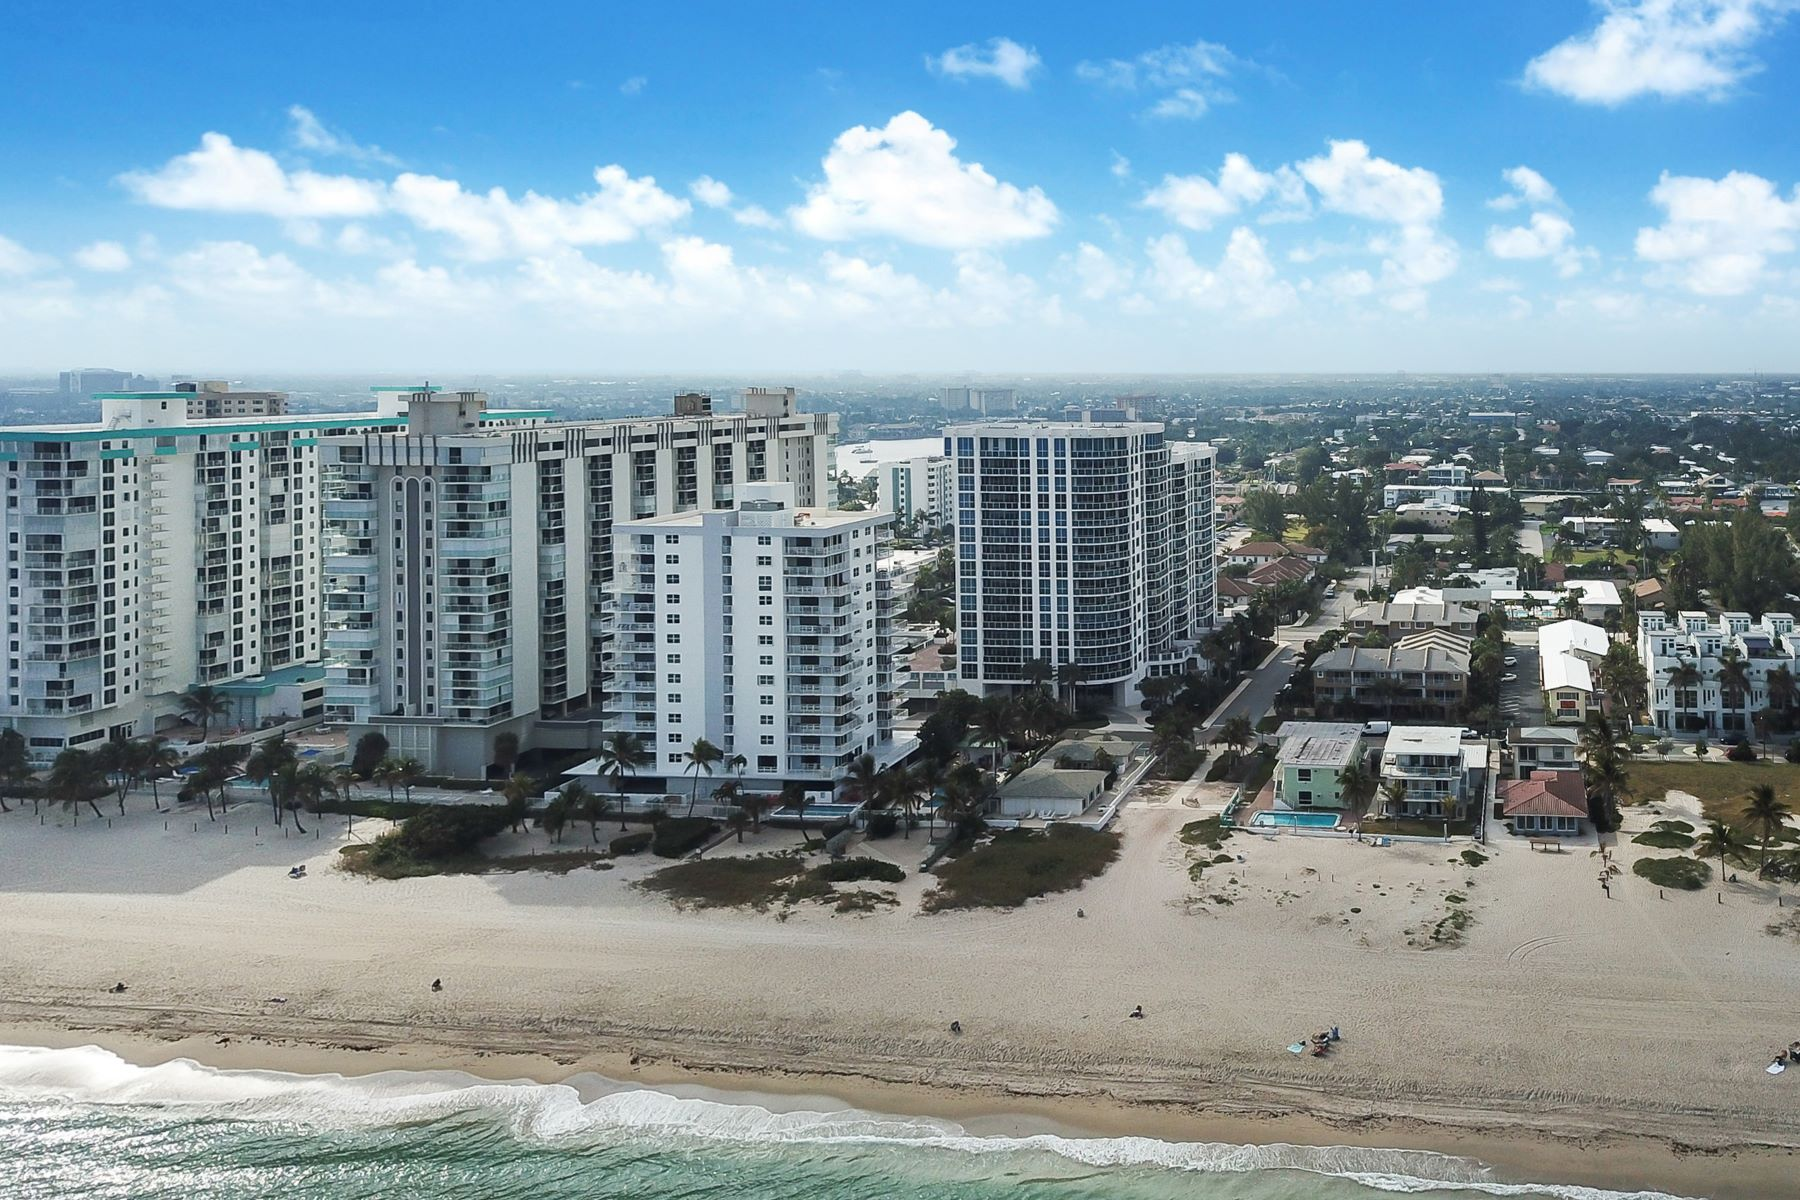 Condominiums for Sale at 801 Briny Avenue 302, Pompano Beach, Florida 33062 United States